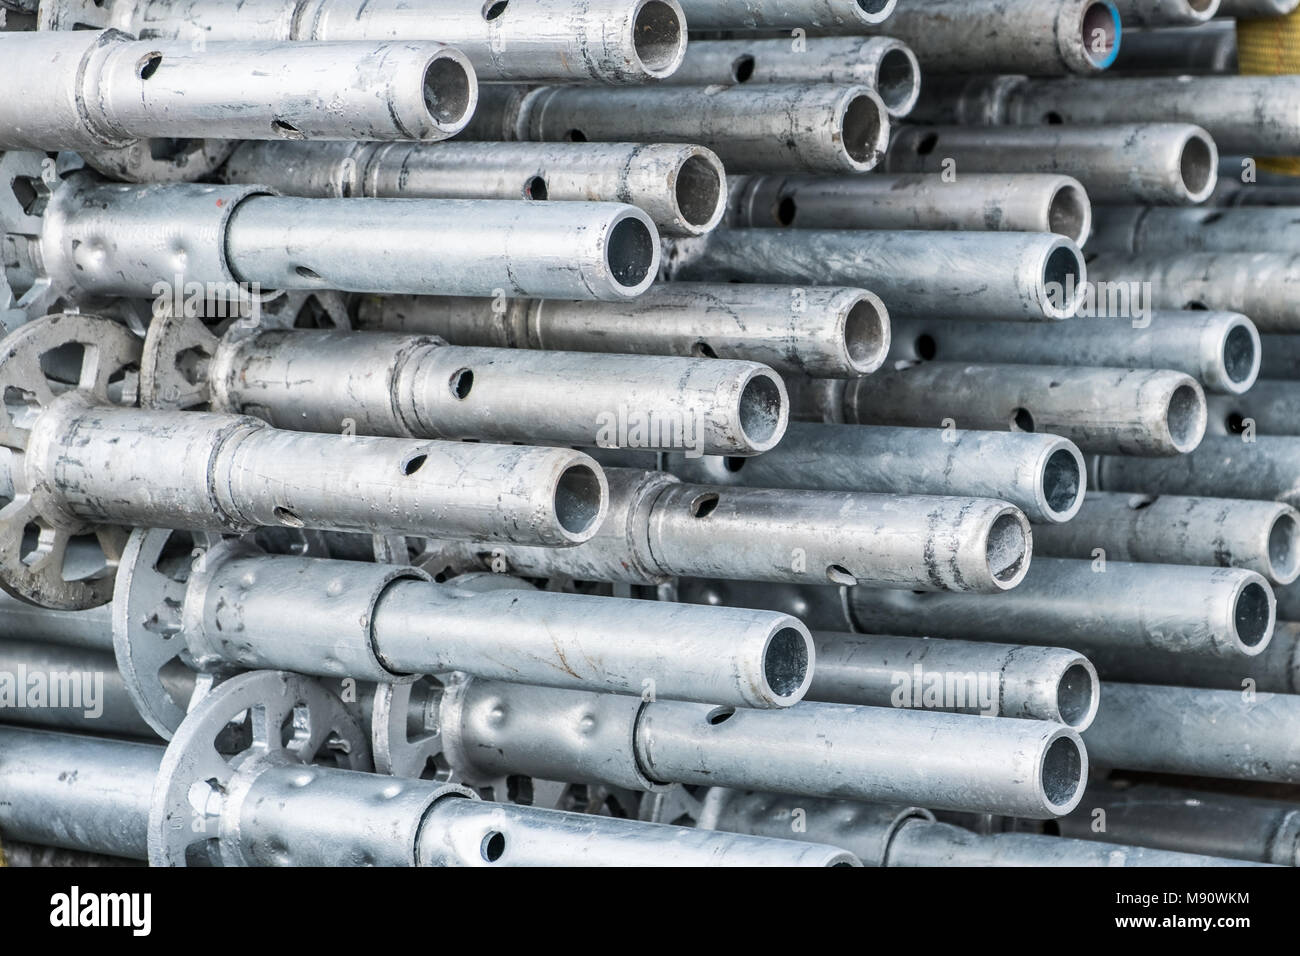 construction industry concept background - scaffolding parts closeup - - Stock Image